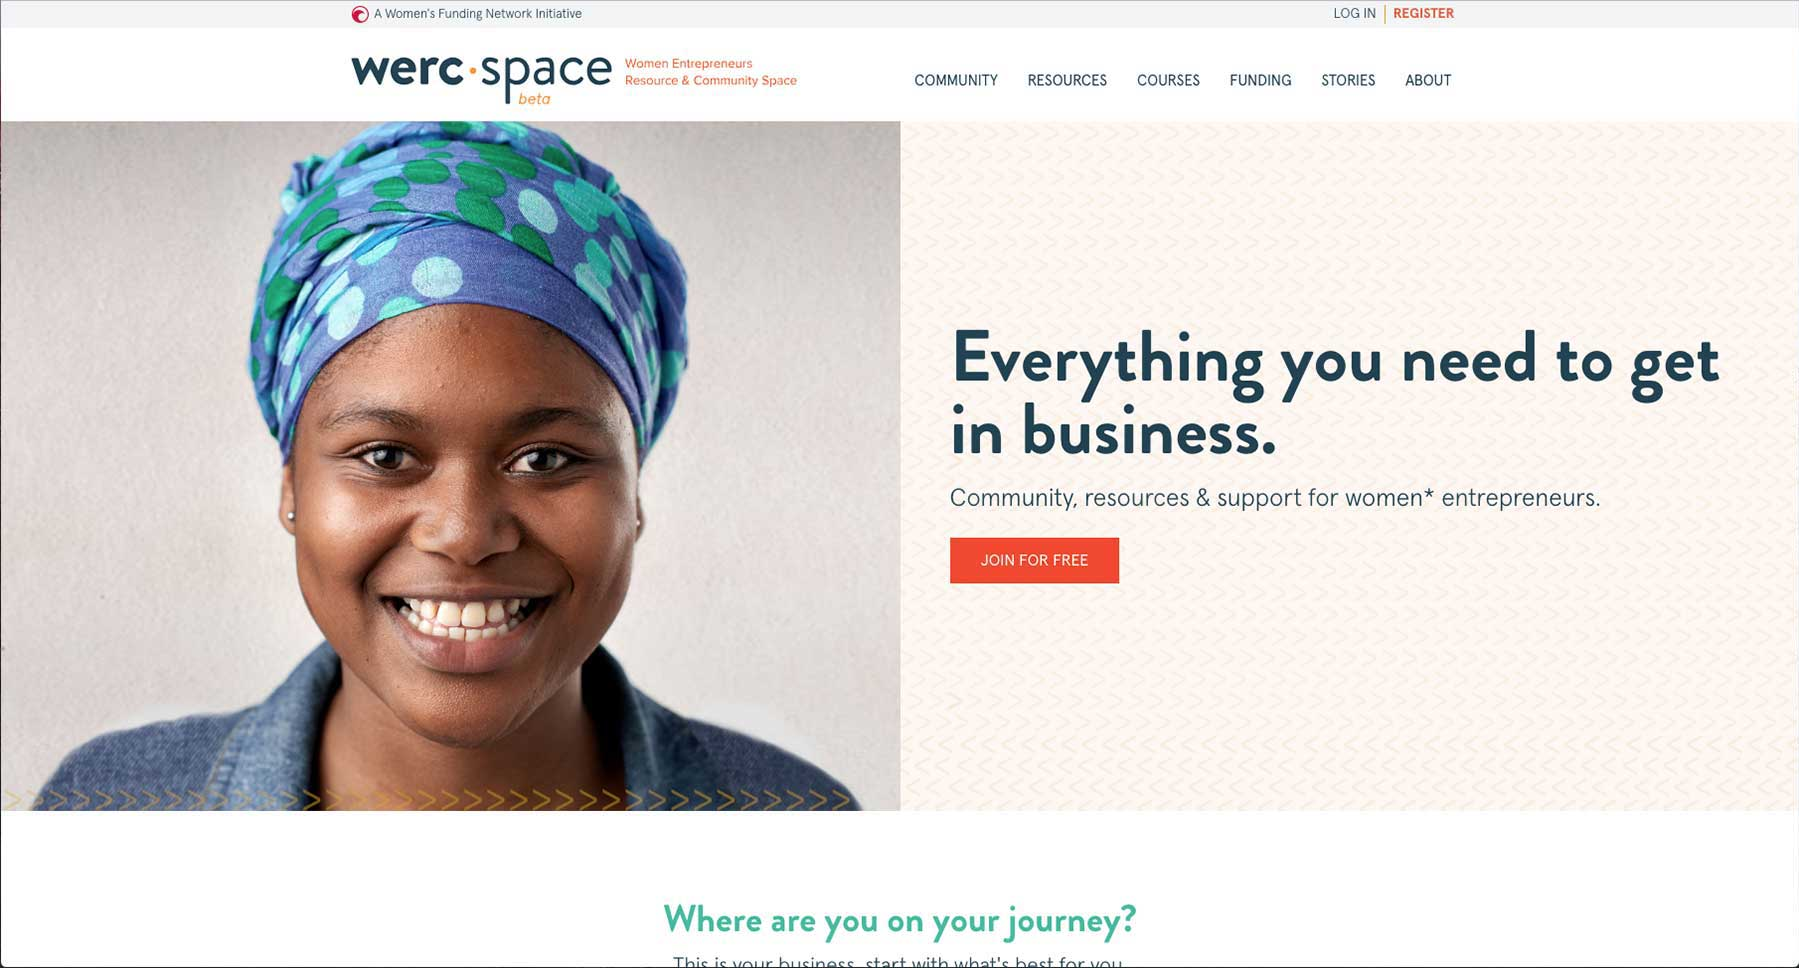 werc space - Home Page